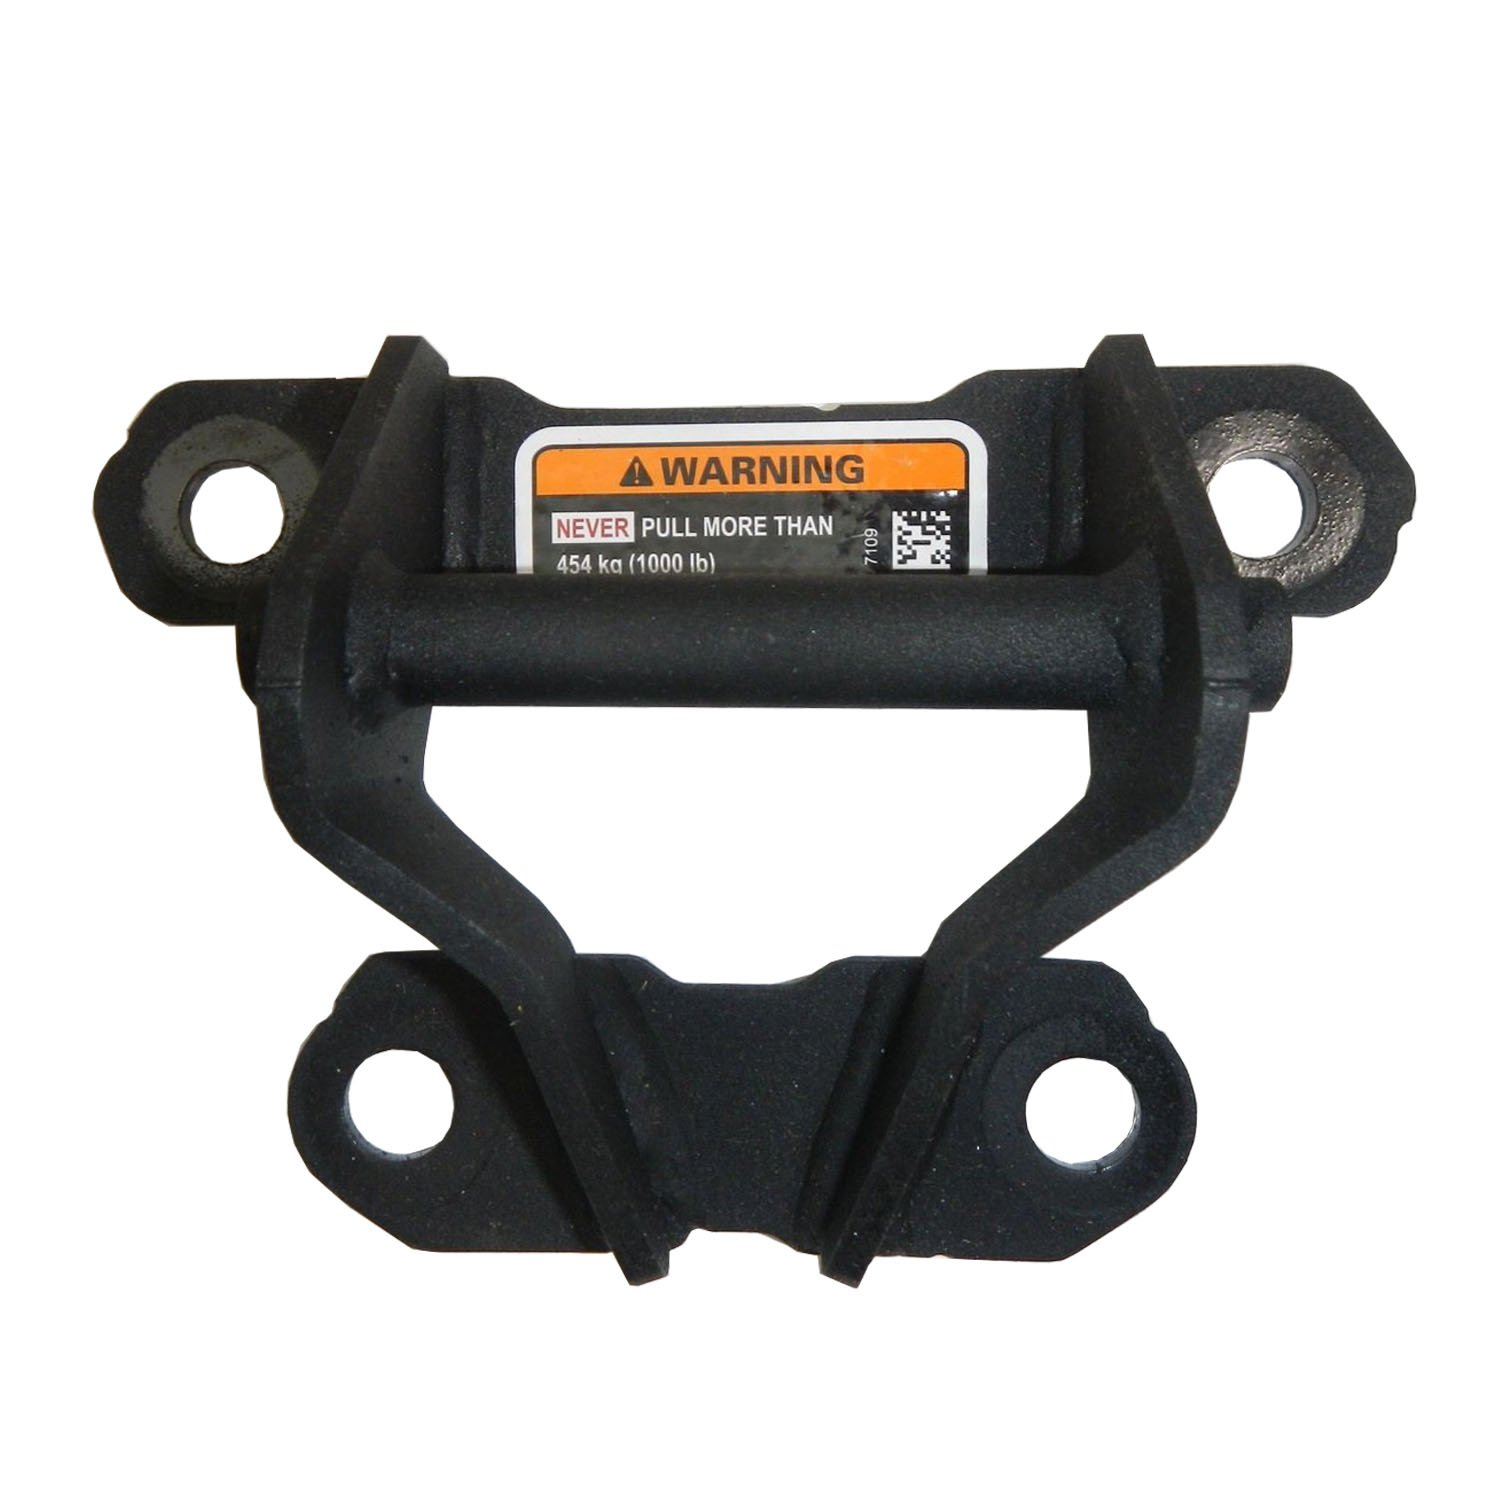 Can-Am New OEM UTV Rear Pull Plate Tow Recovery Hook, Maverick X3, 715004450 by Can-Am